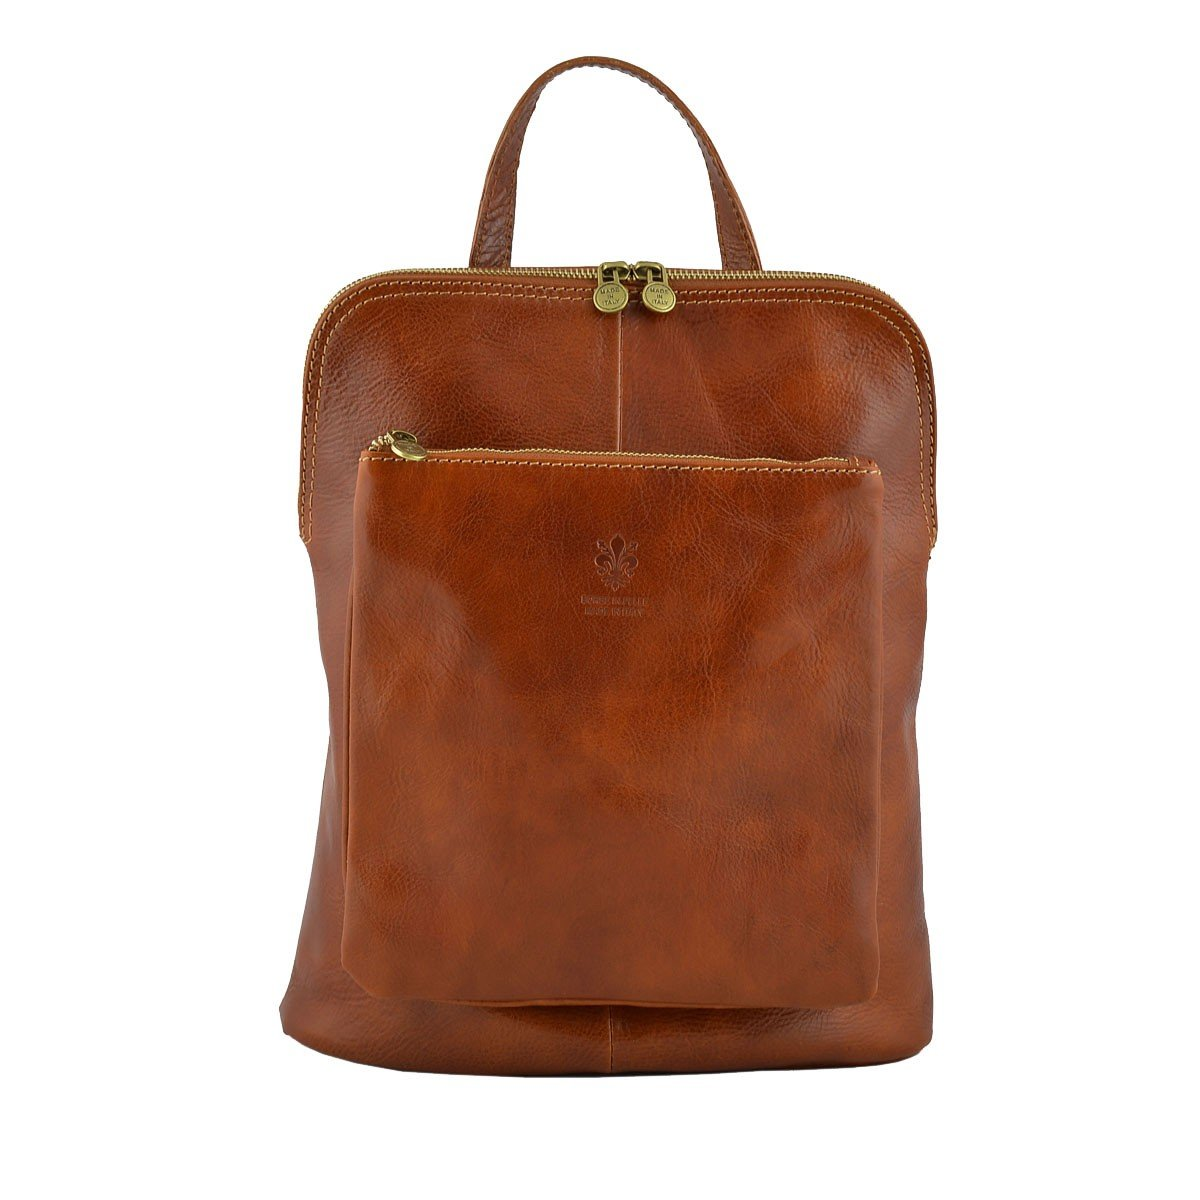 Made In Italy Genuine Leather Backpack Shoulder Bag Color Cognac - Backpack B06XNM5W9R